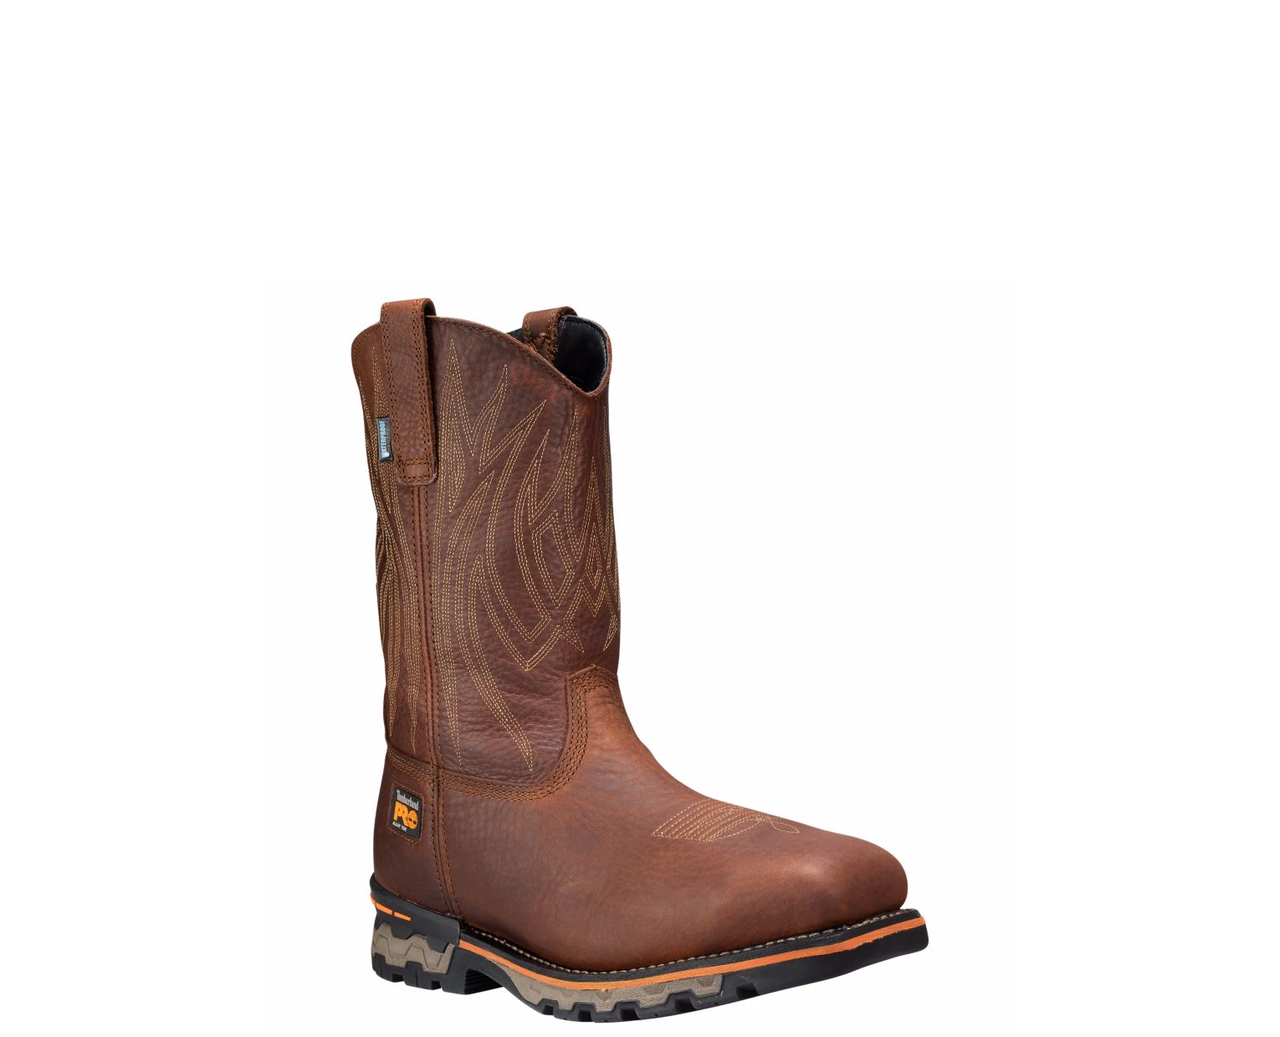 Timberland Pro AG Boss Square Brown Waterproof Alloy Toe Pull-On Work Boots